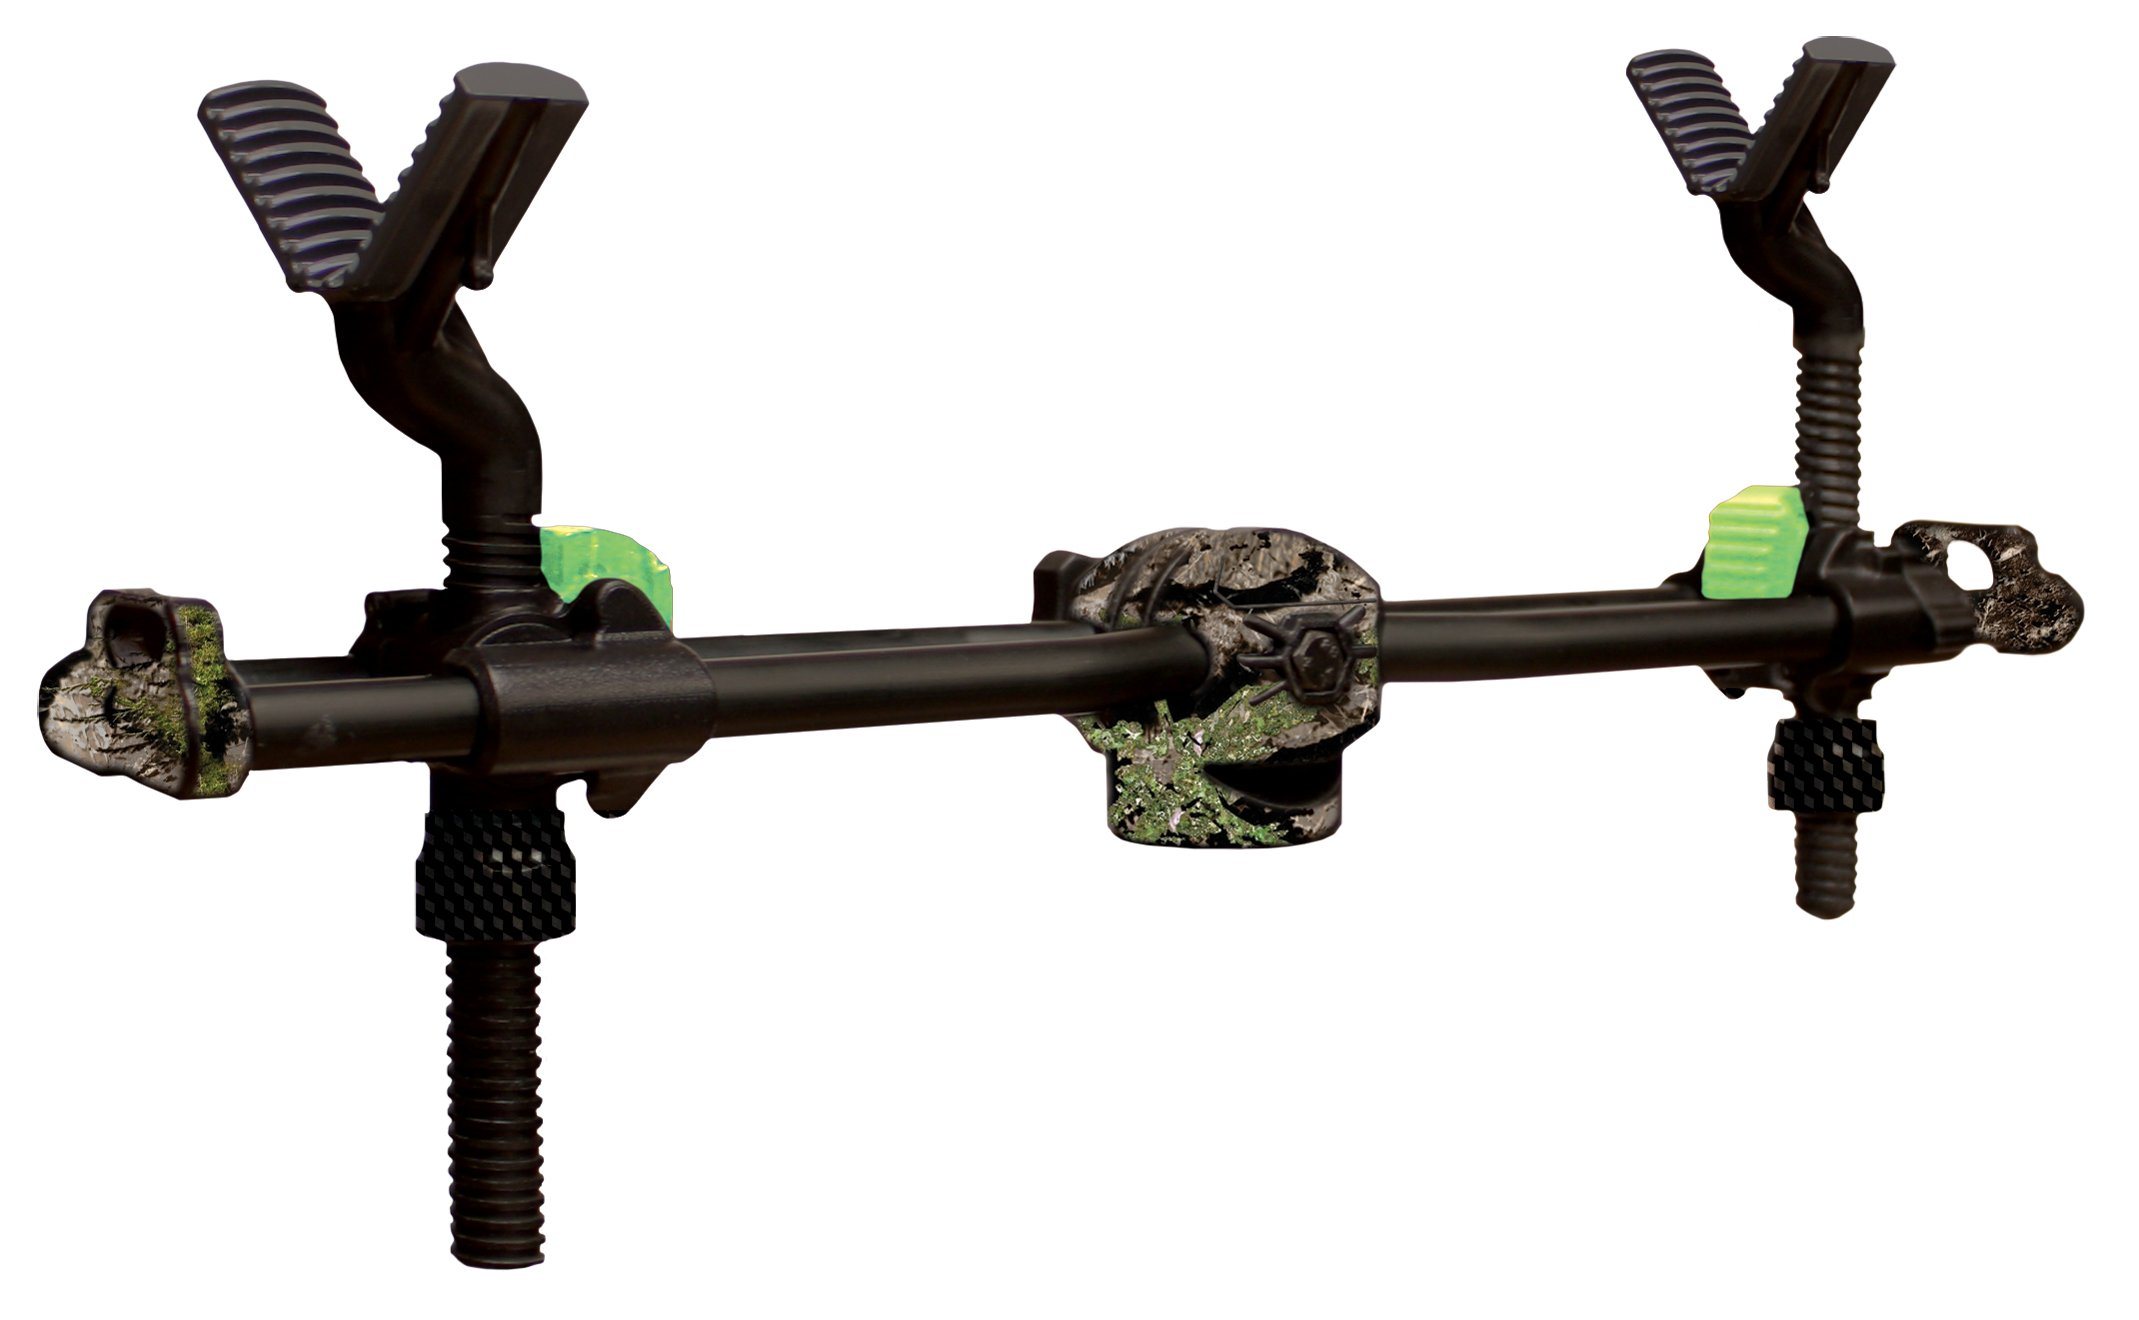 Primos Hunting 65808 2-Point Gun Rest Trigger Stick Attachment, One Size by Primos Hunting